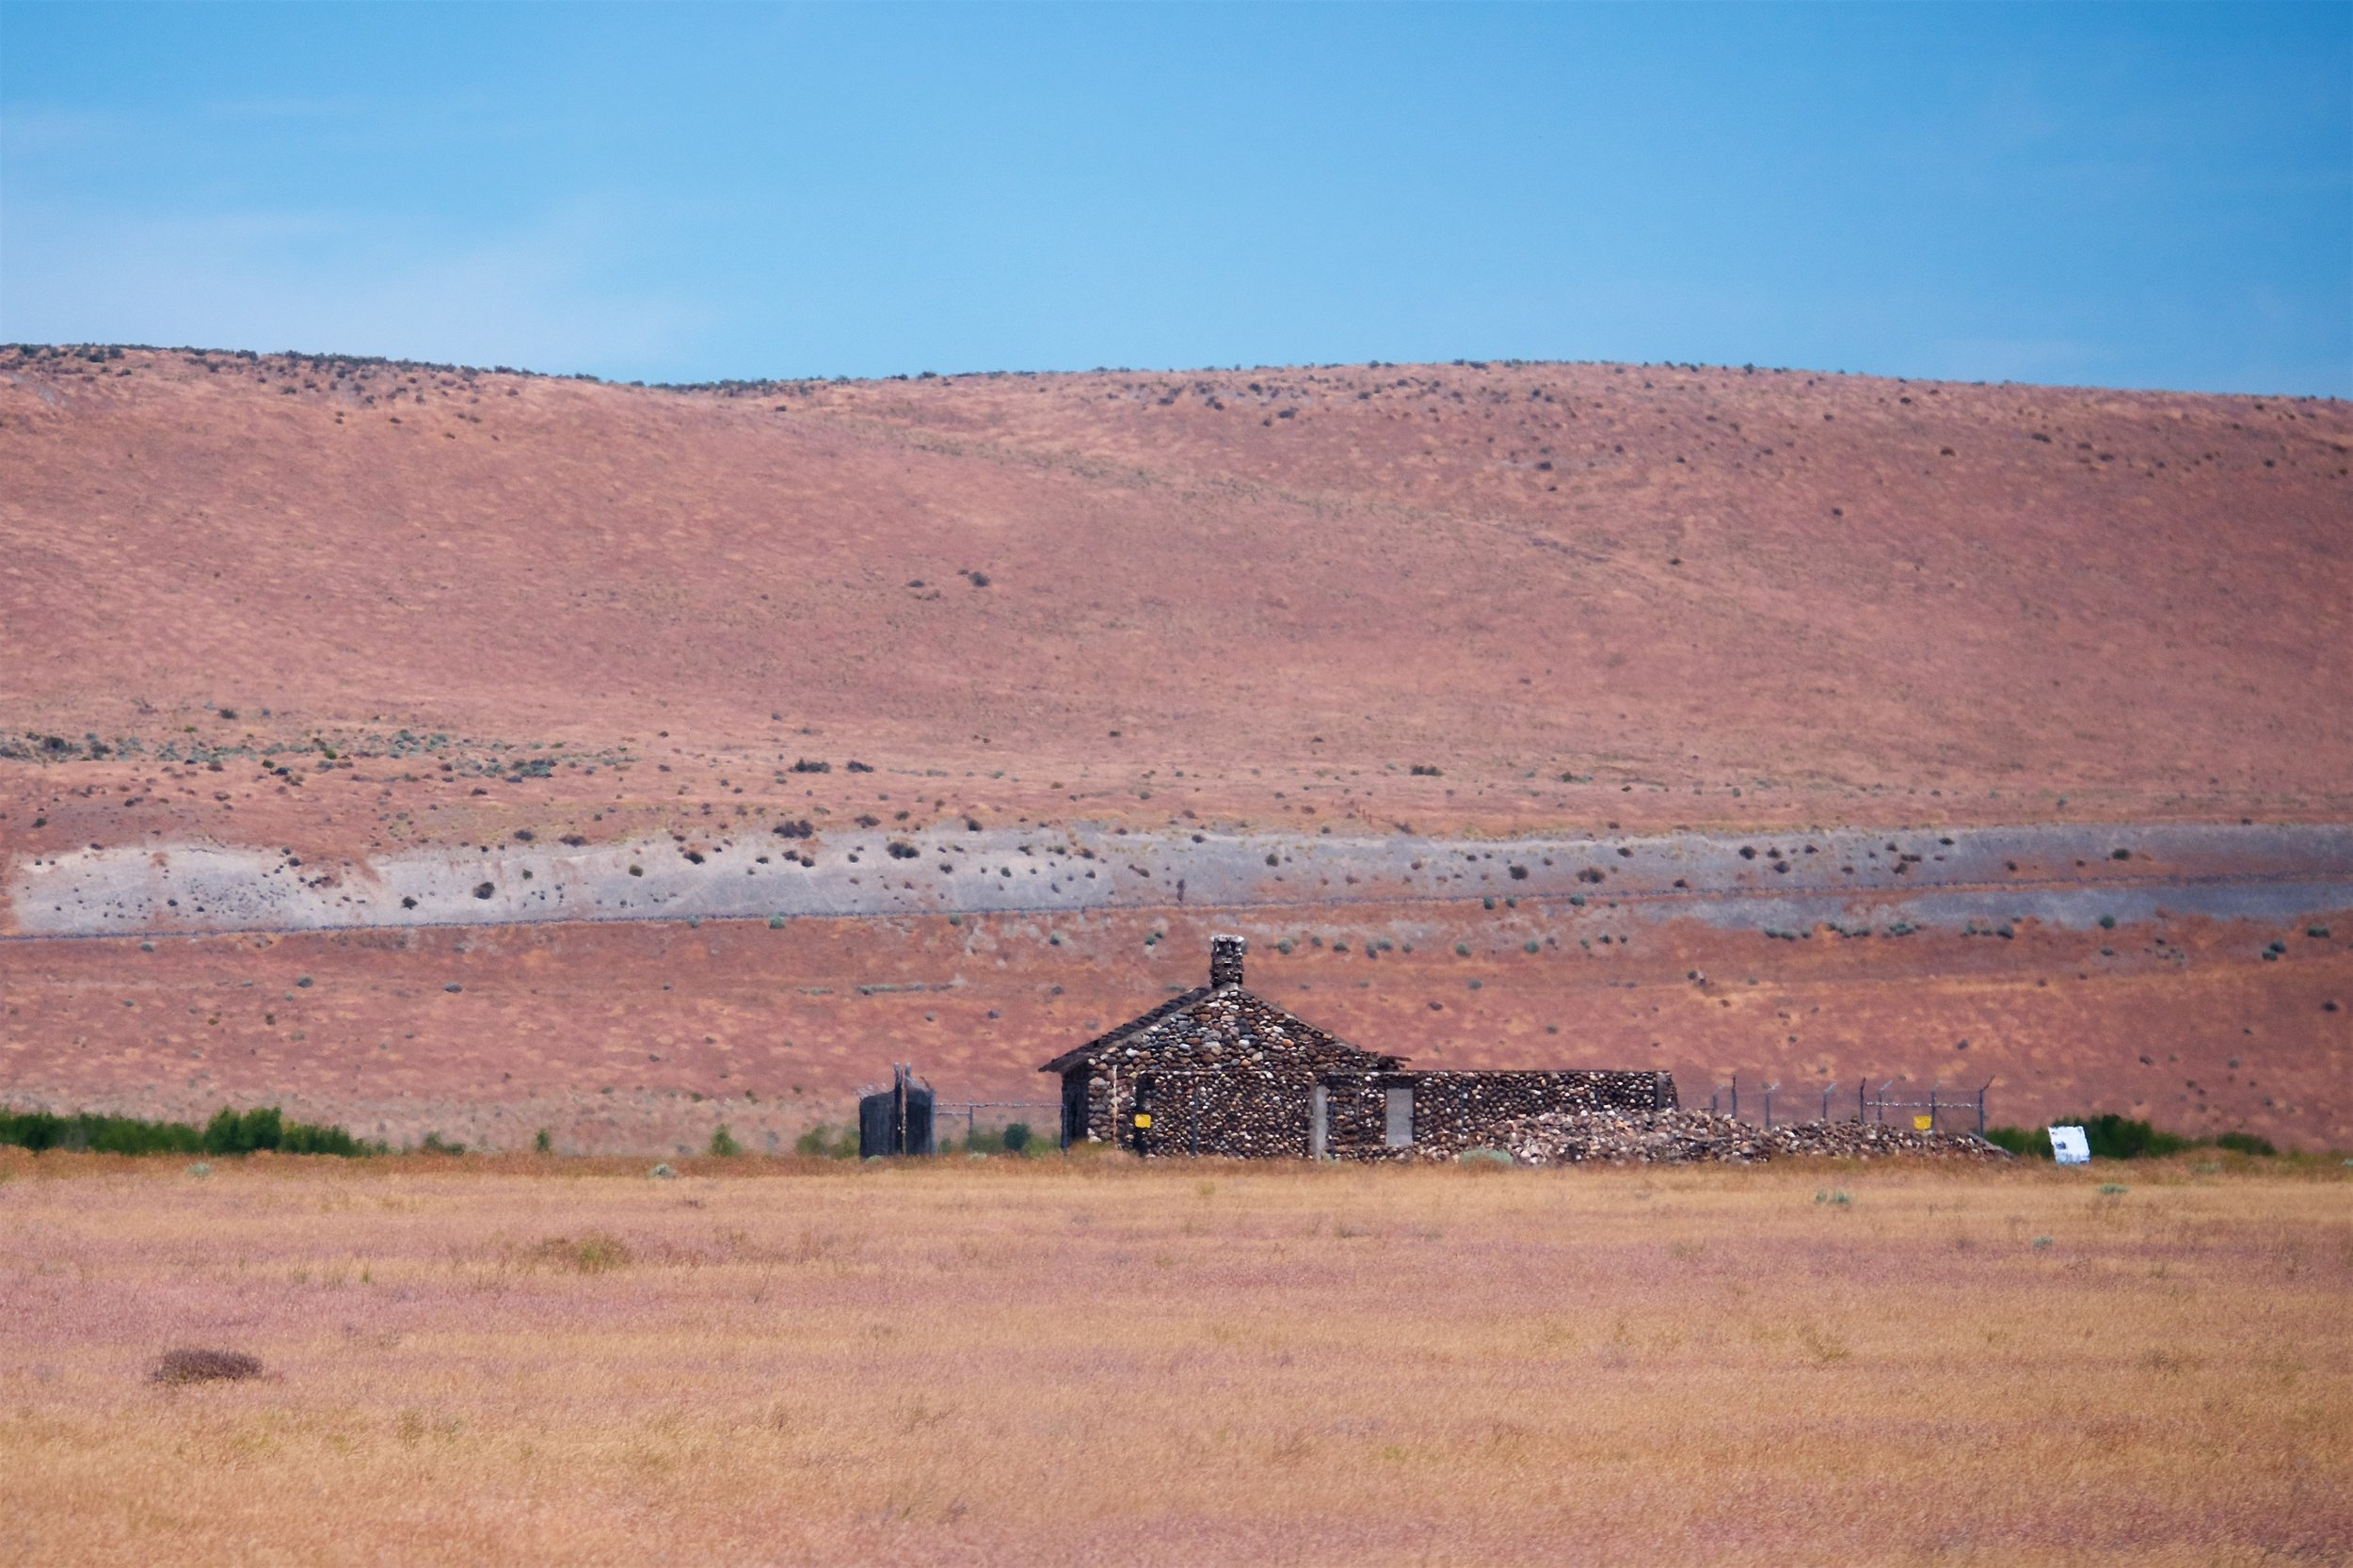 Remnants of a farmstead building of people who lived in the area before Hanford was taken over for government use